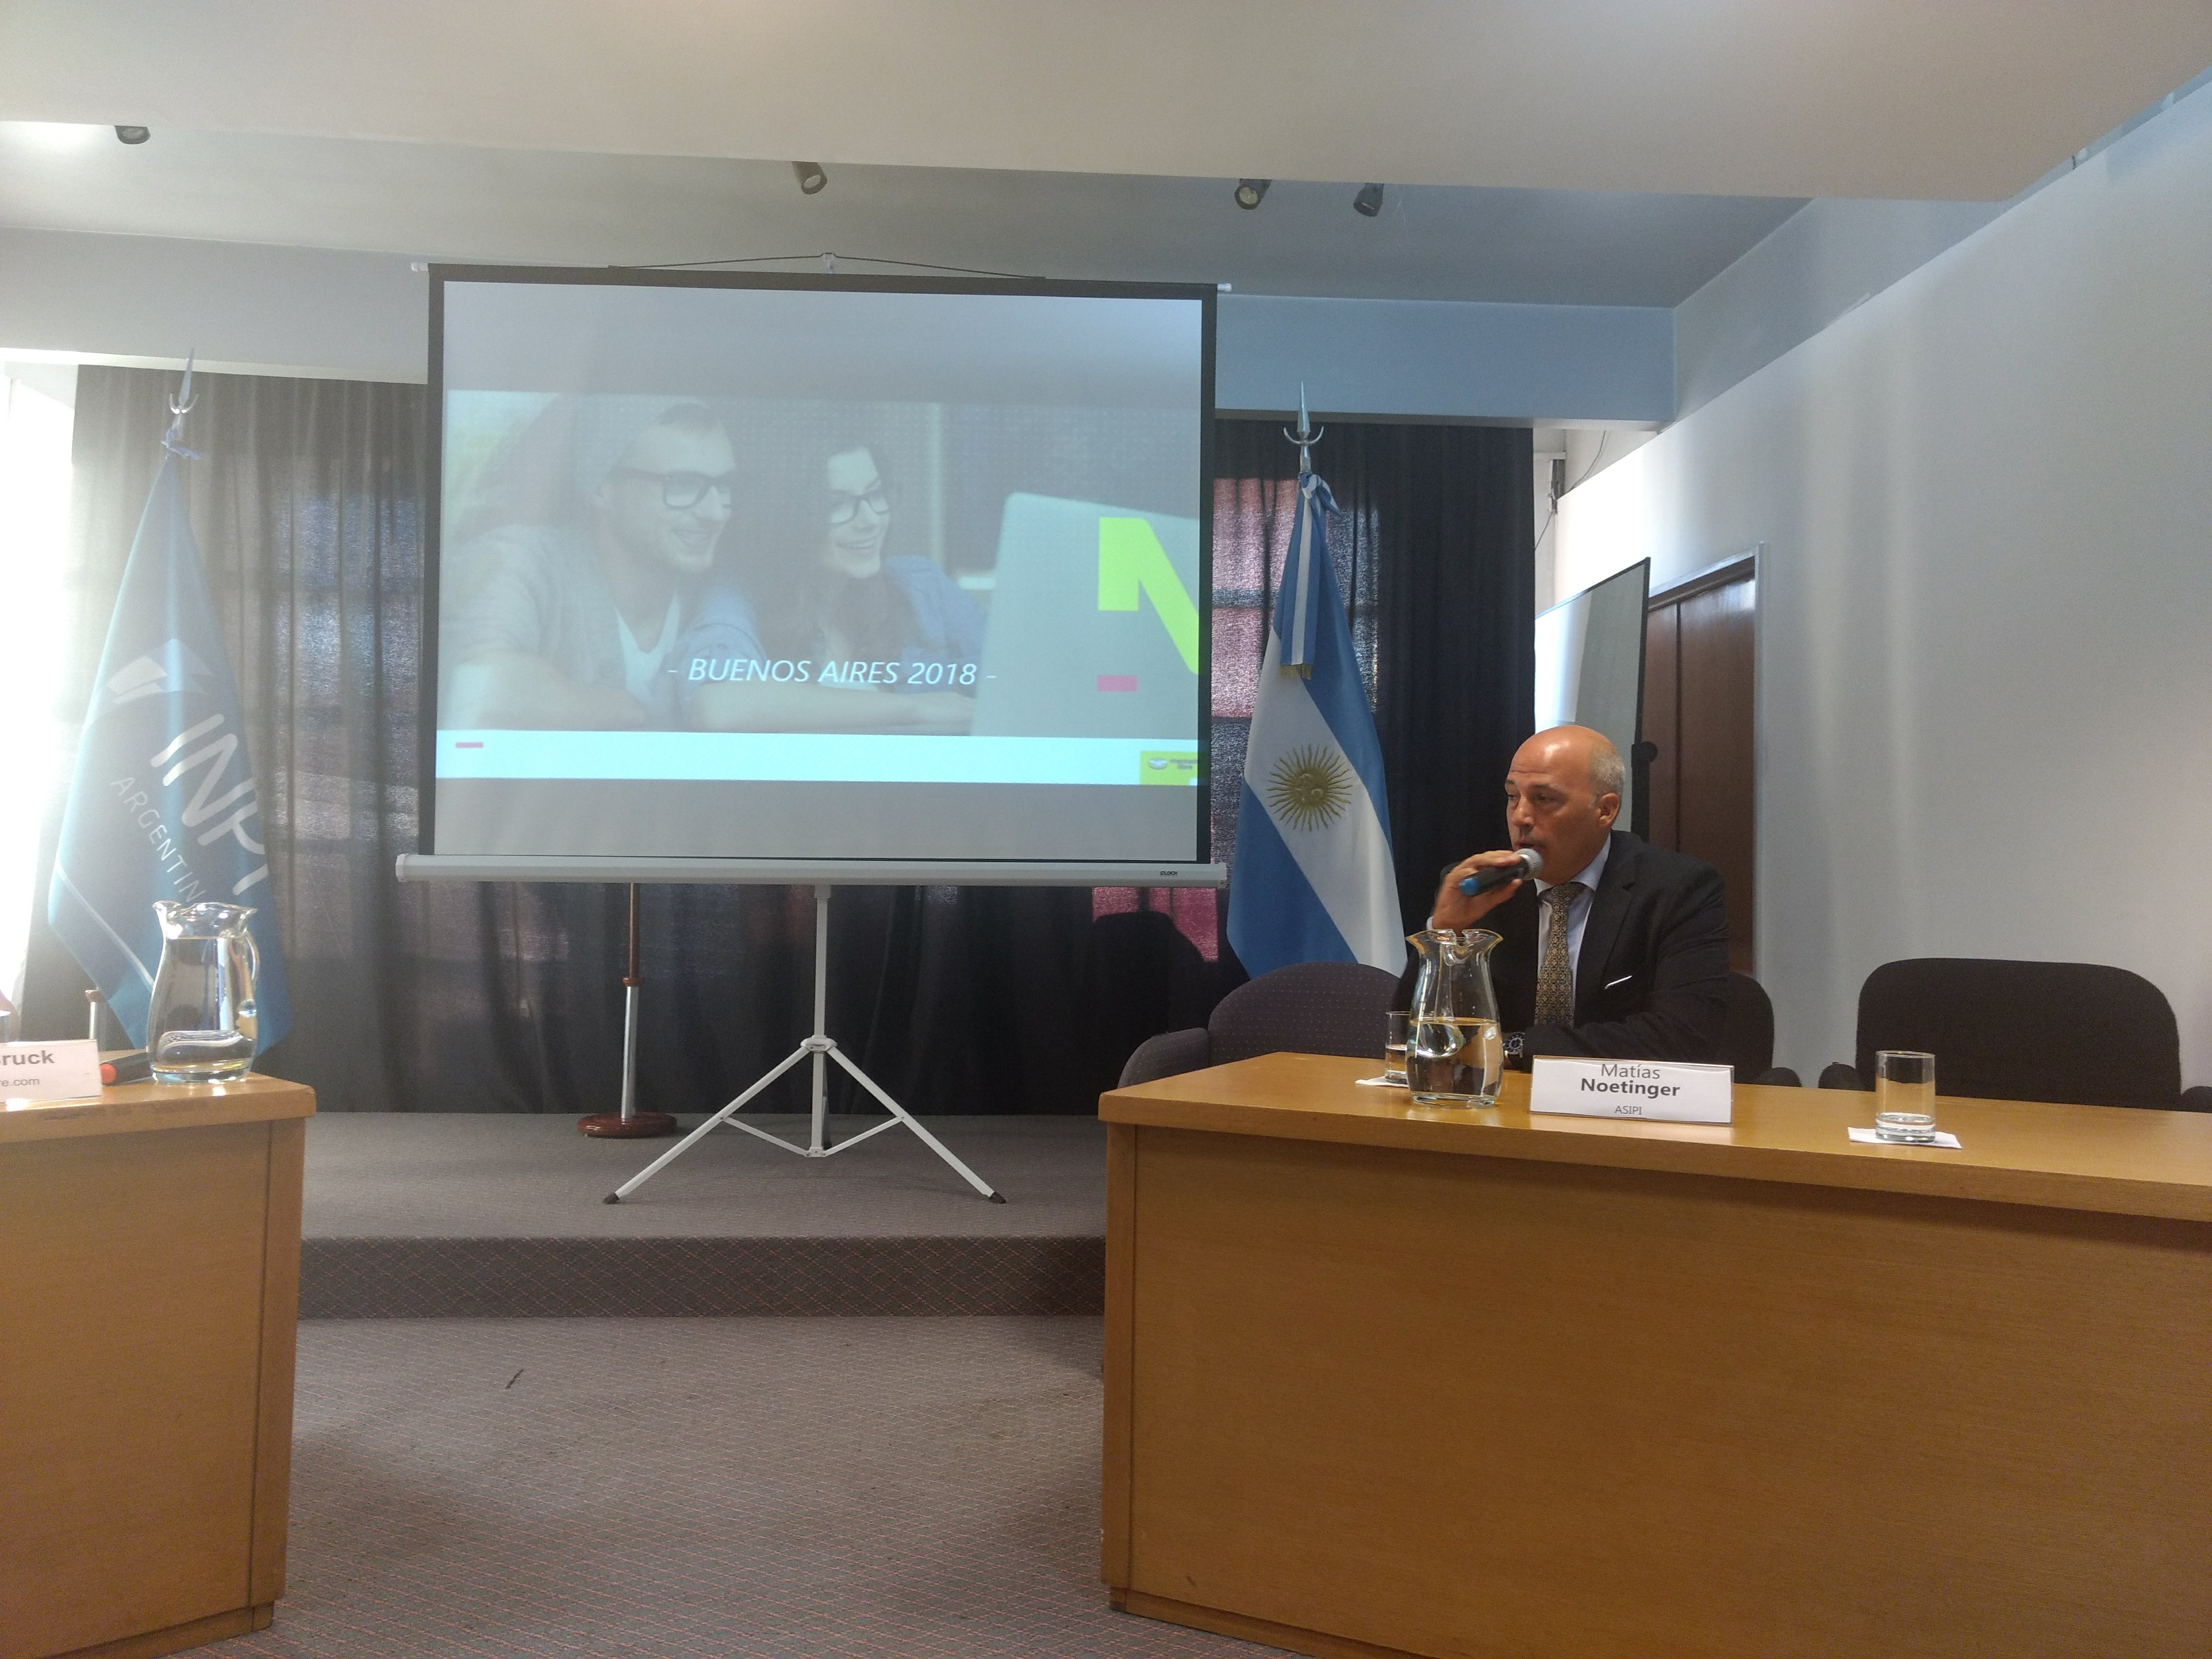 Event on the Impact Study in Argentina